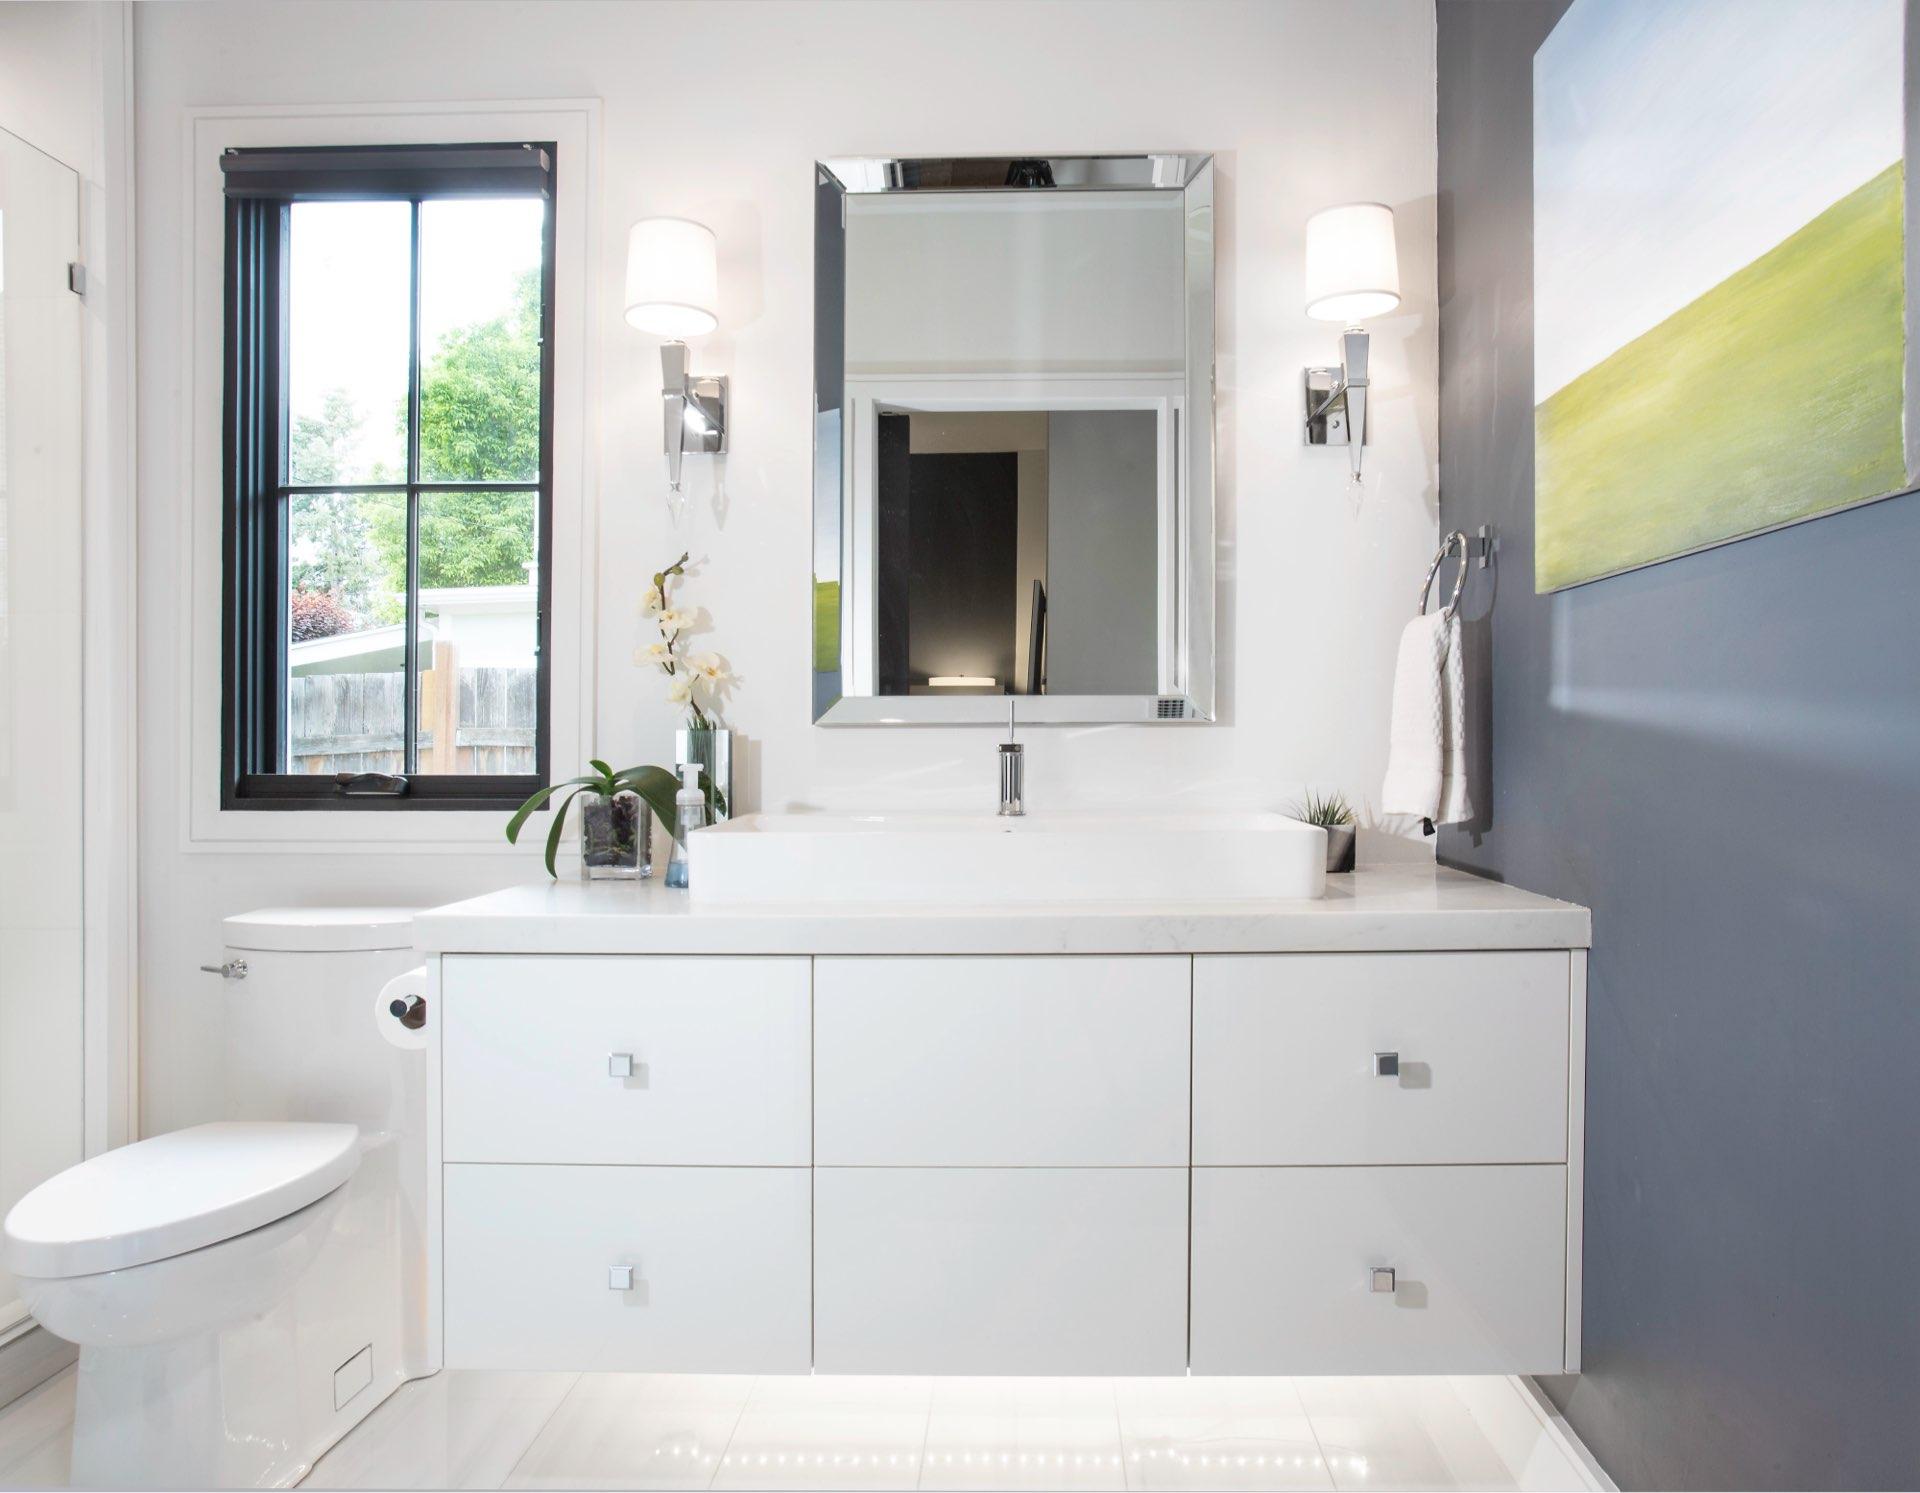 Bathroom, House 970, residential architectural design by Elliott Workgroup